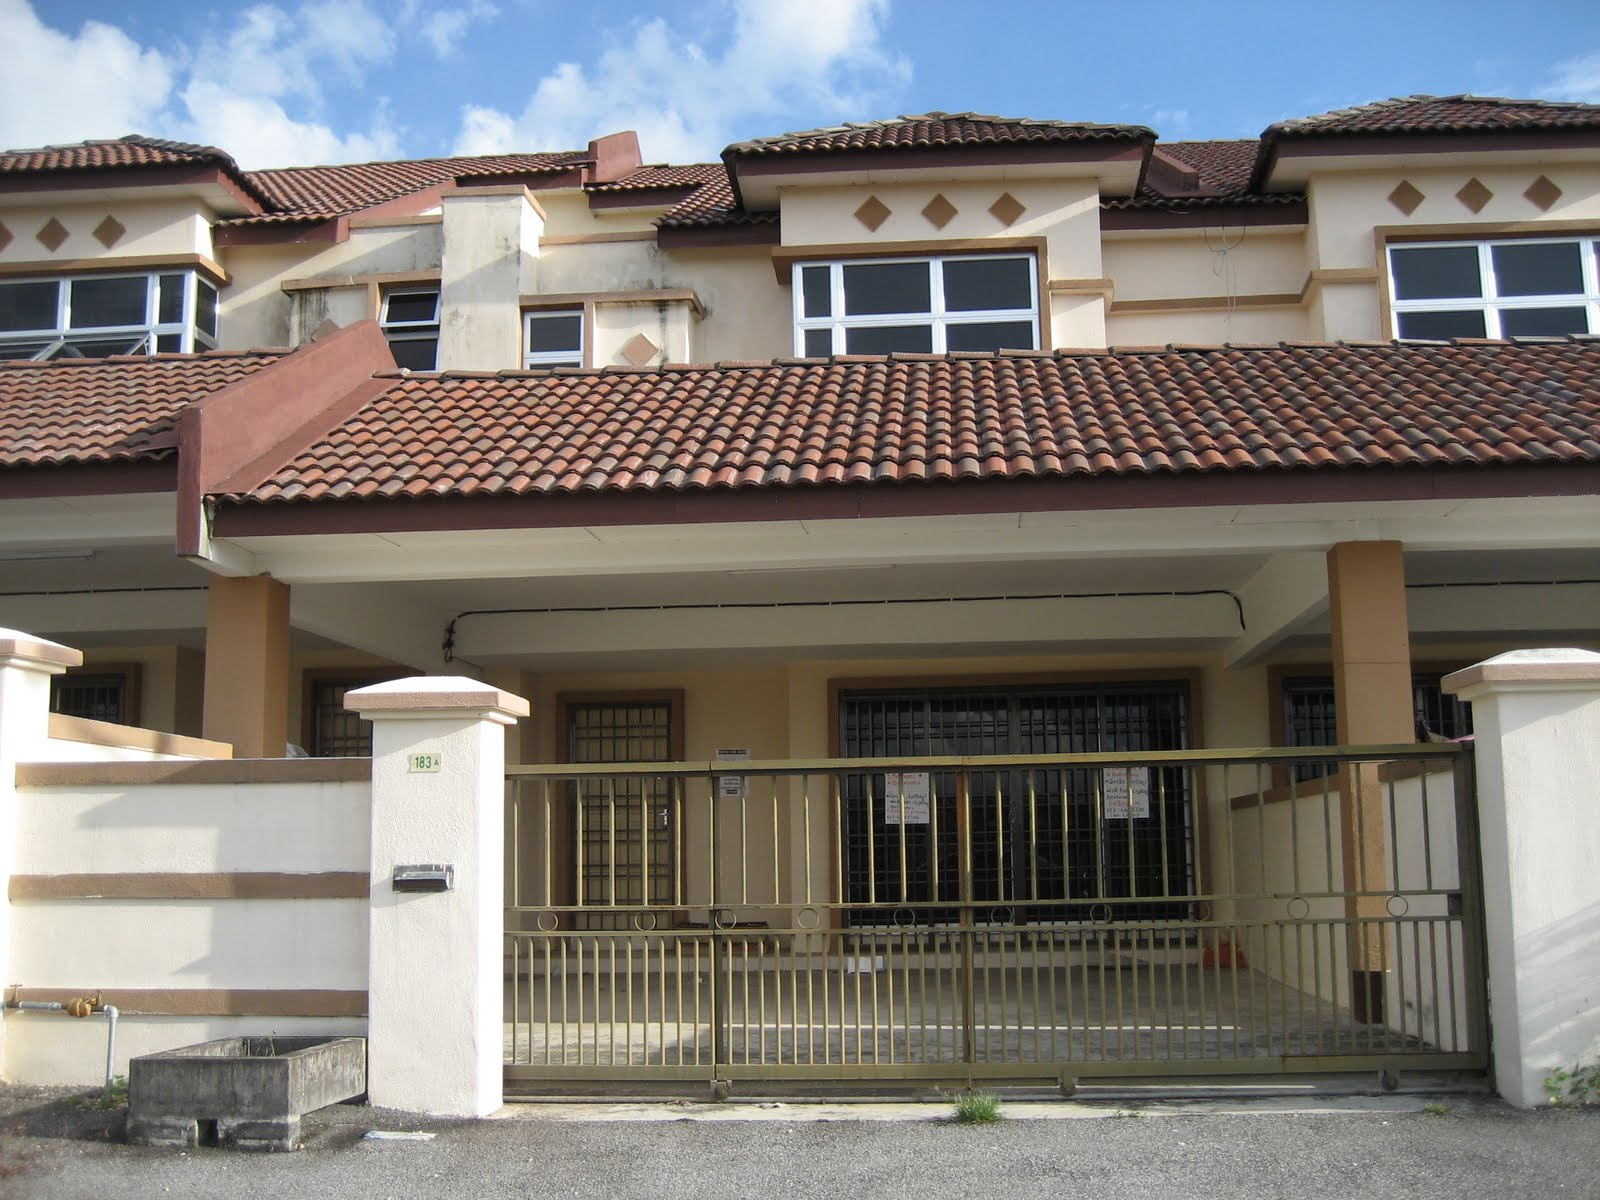 kampar mature singles Kampar is also home for the main campus of universiti tunku abdul rahman (utar) to cater for the many students, there is a wide array of restaurants, cafes and convenience shops, all located near the hotel.